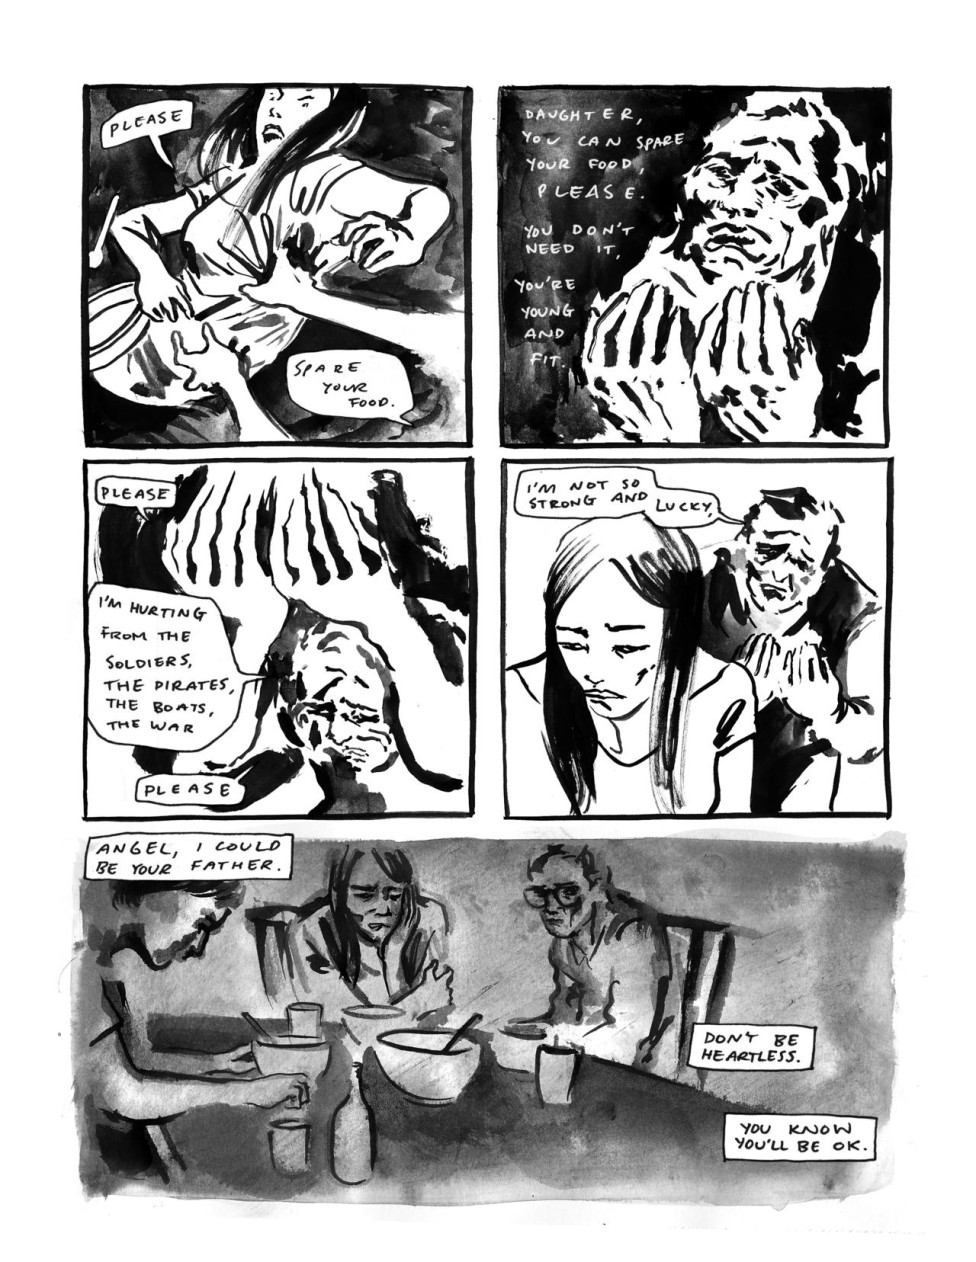 """Ma,"" a Comic That Puts a Human Face on the Refugees Affected by the Vietnam War"